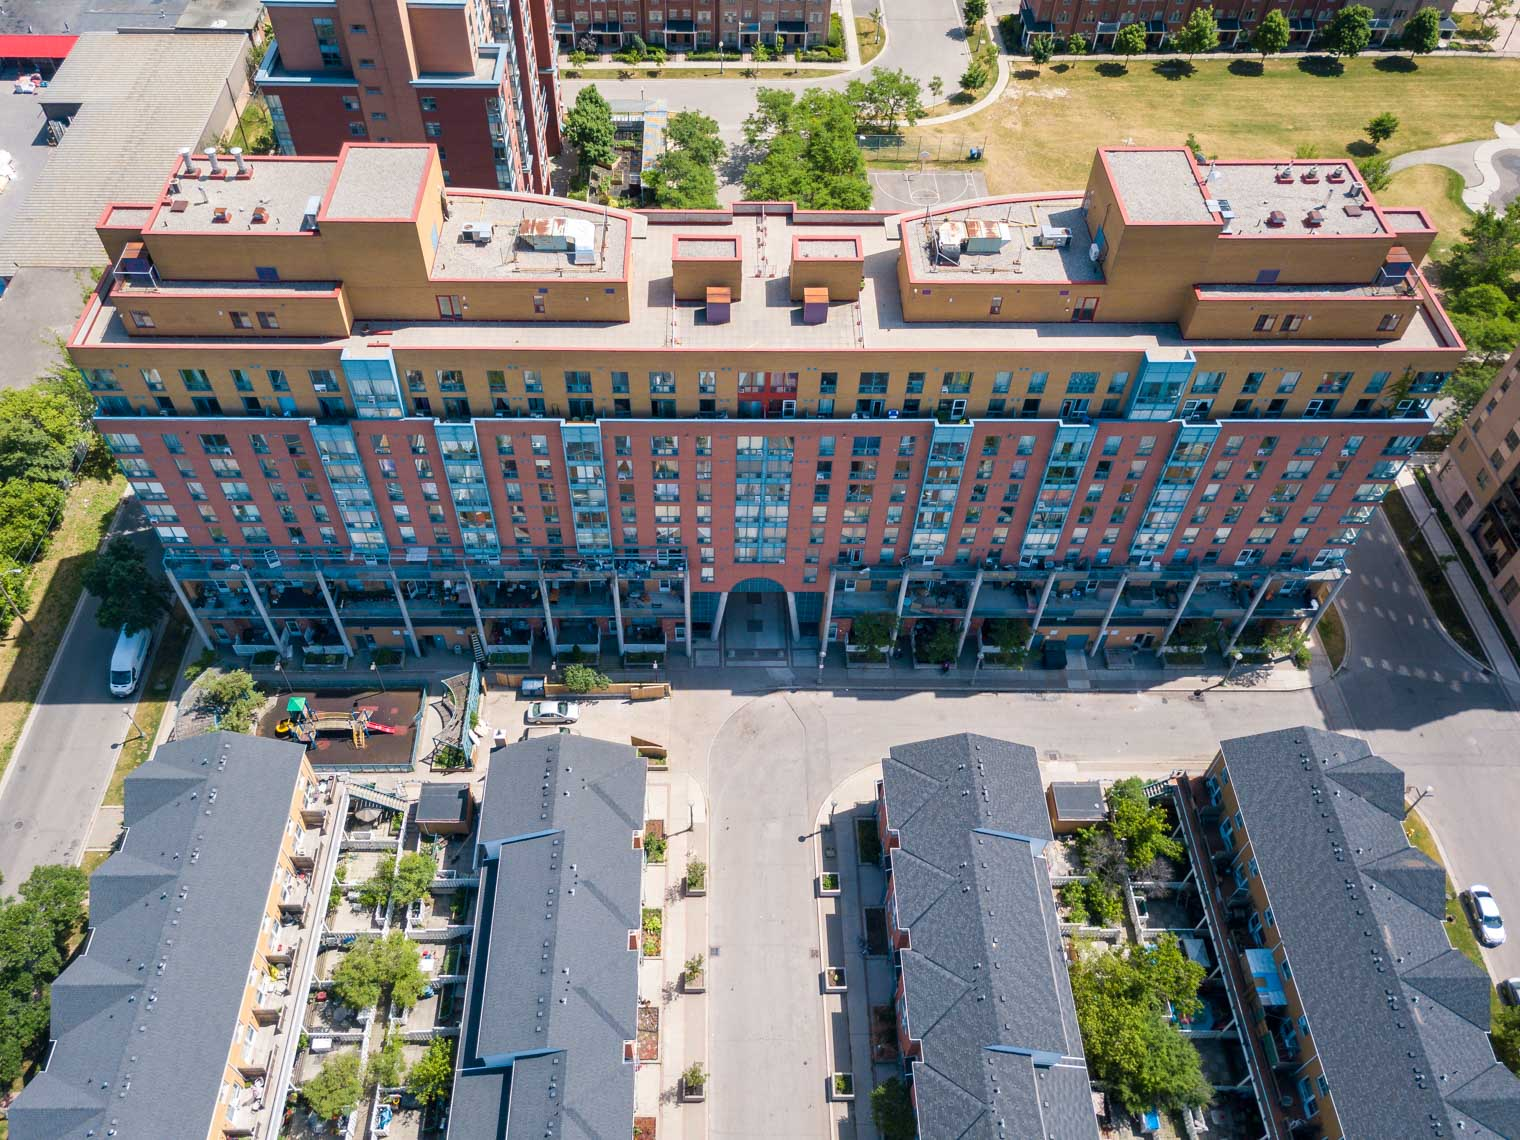 Aerial view of Robert Cooke Co-op building in Etobicoke